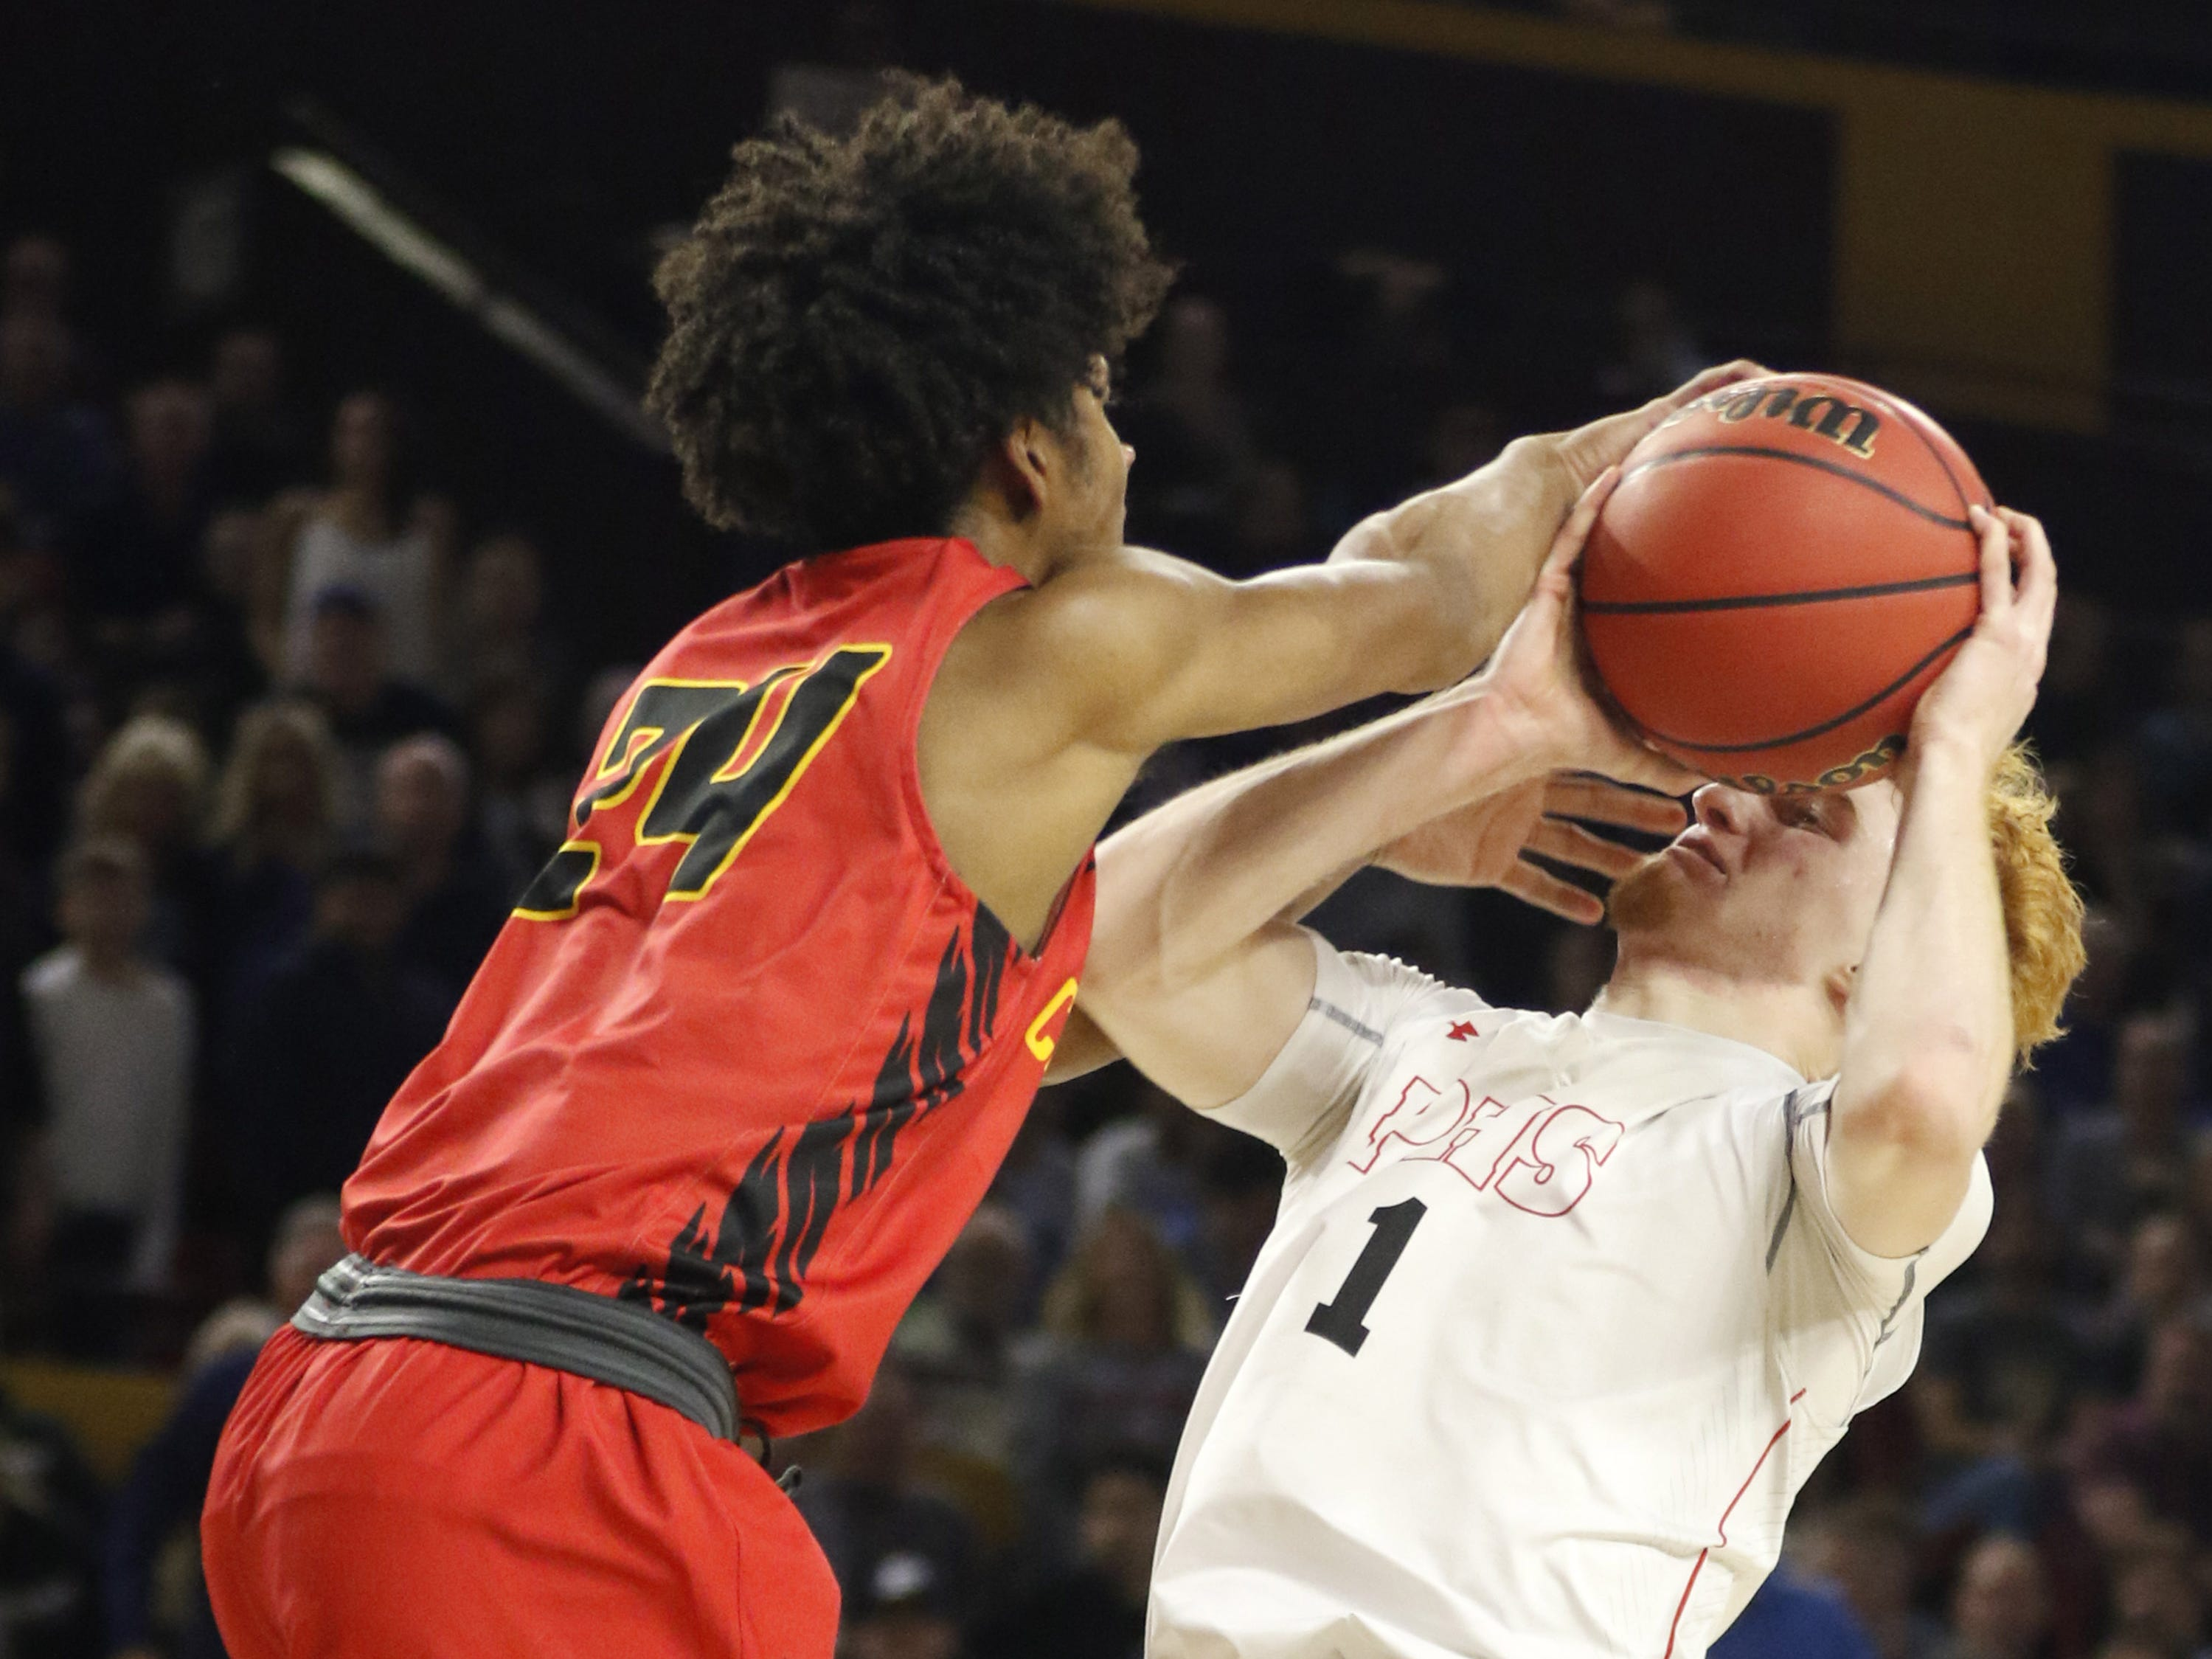 Chaparral Jordan Josephs (24) ties up Pinnacle's Nico Mannion (1) during the 6A Boys State Championship at Wells Fargo Arena in Tempe Tuesday, Feb 26, 2019.